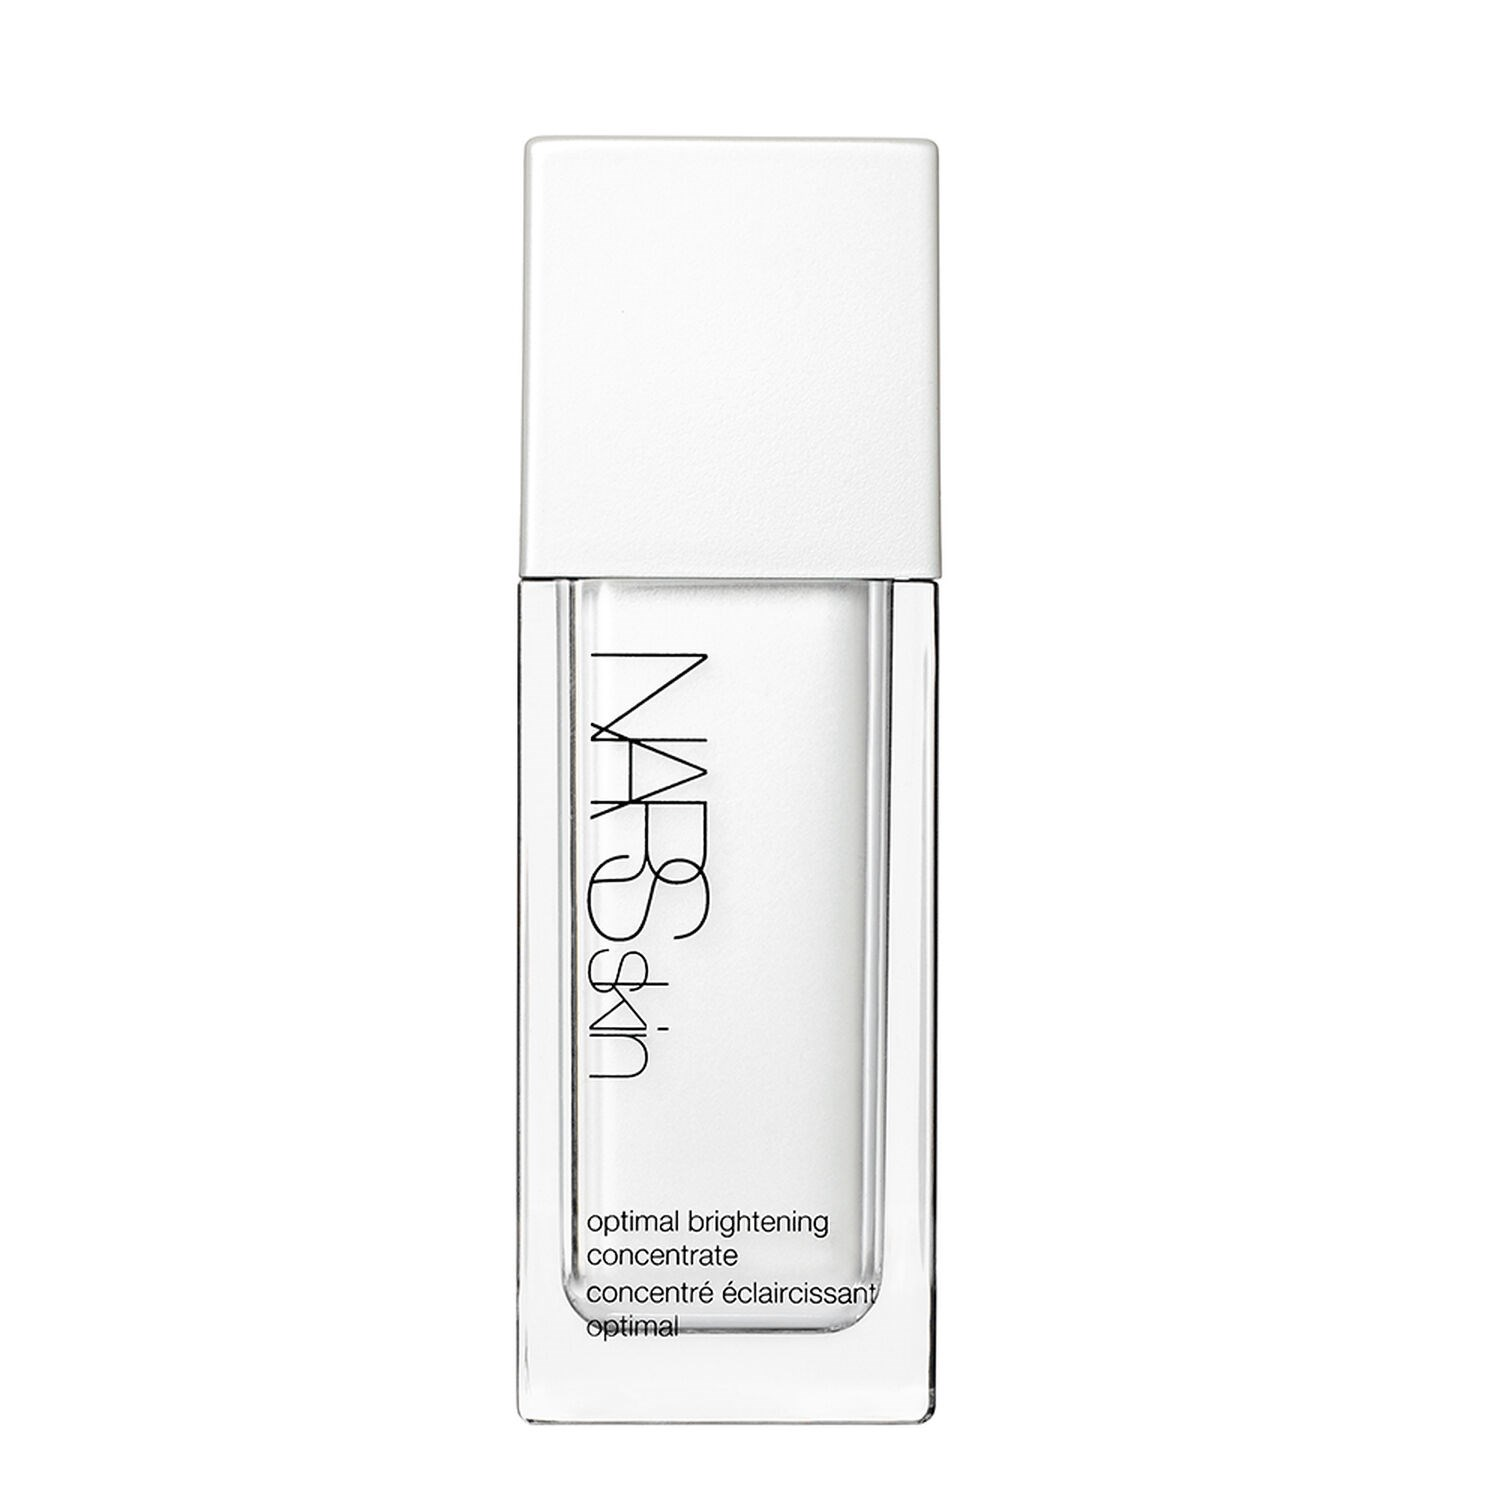 OPTIMAL BRIGHTENING CONCENTRATE 1